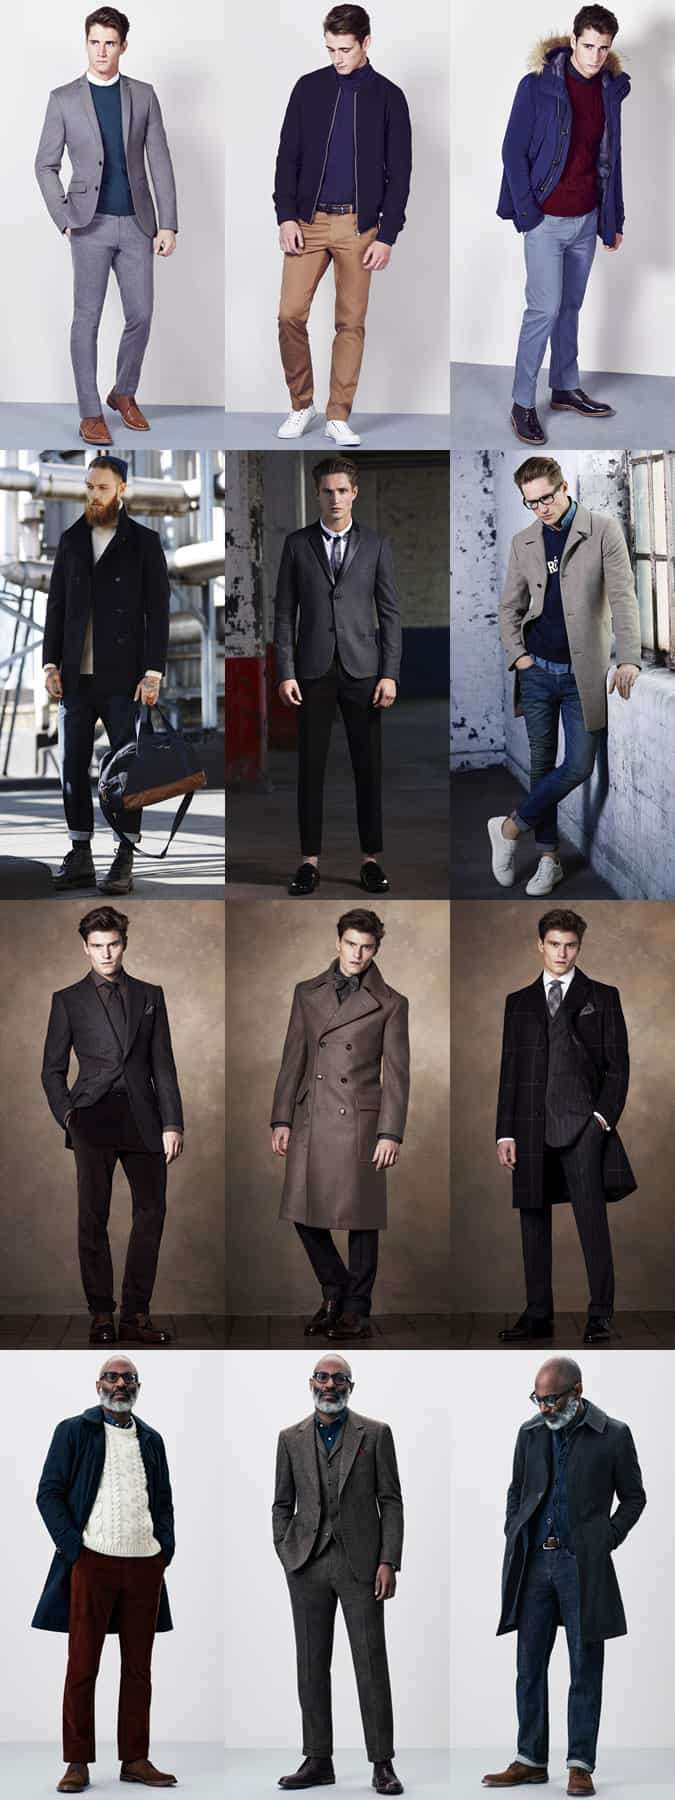 Men's British High Street Retailers AW14 Menswear Lookbook - New Look, Burton, M&S and John Lewis